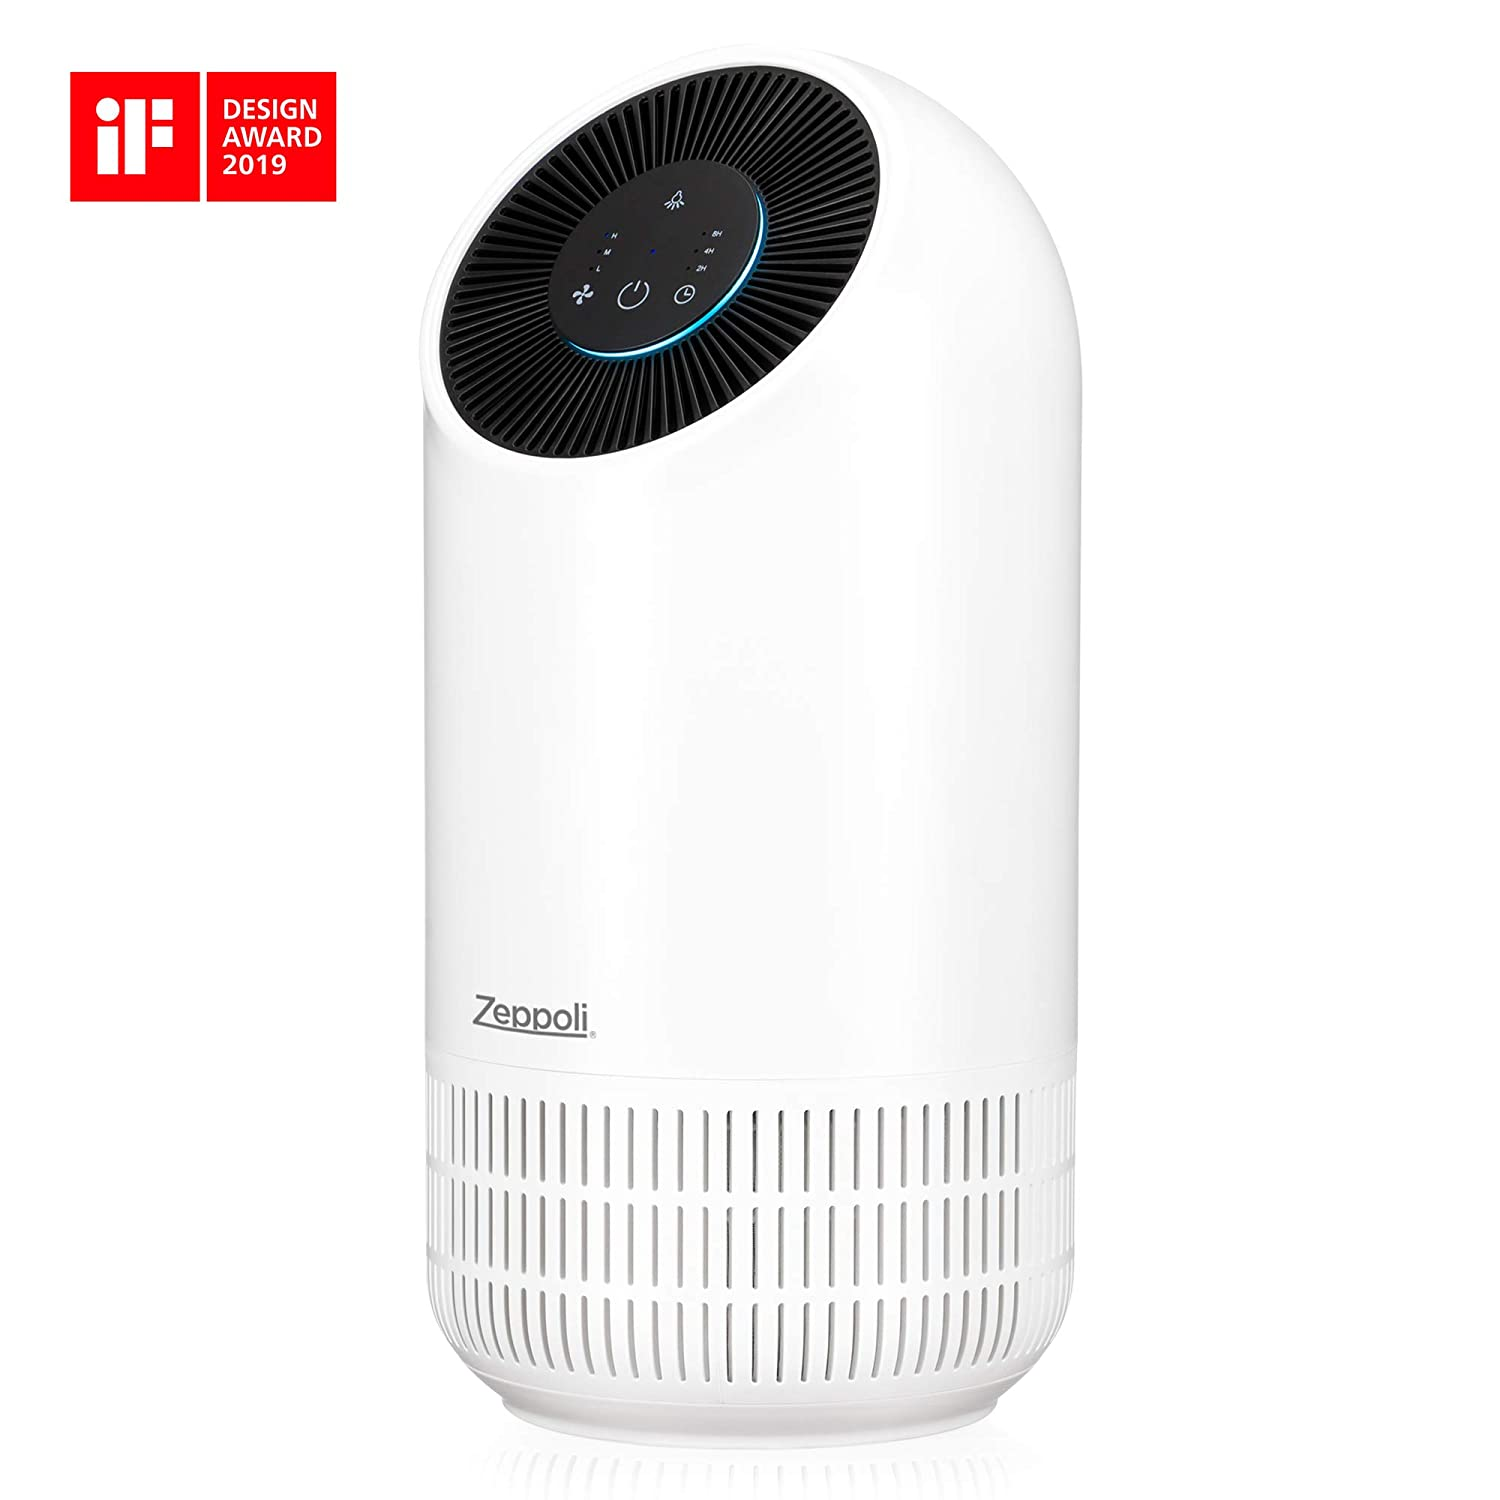 Zeppoli Air Purifier for Home Air Freshener for Pets Hair, Odor Dander Allergies, and Germs Purifiers with True HEPA Air Filter Quiet in Office or Bedroom – Smoke, Dust, and Mold Remover